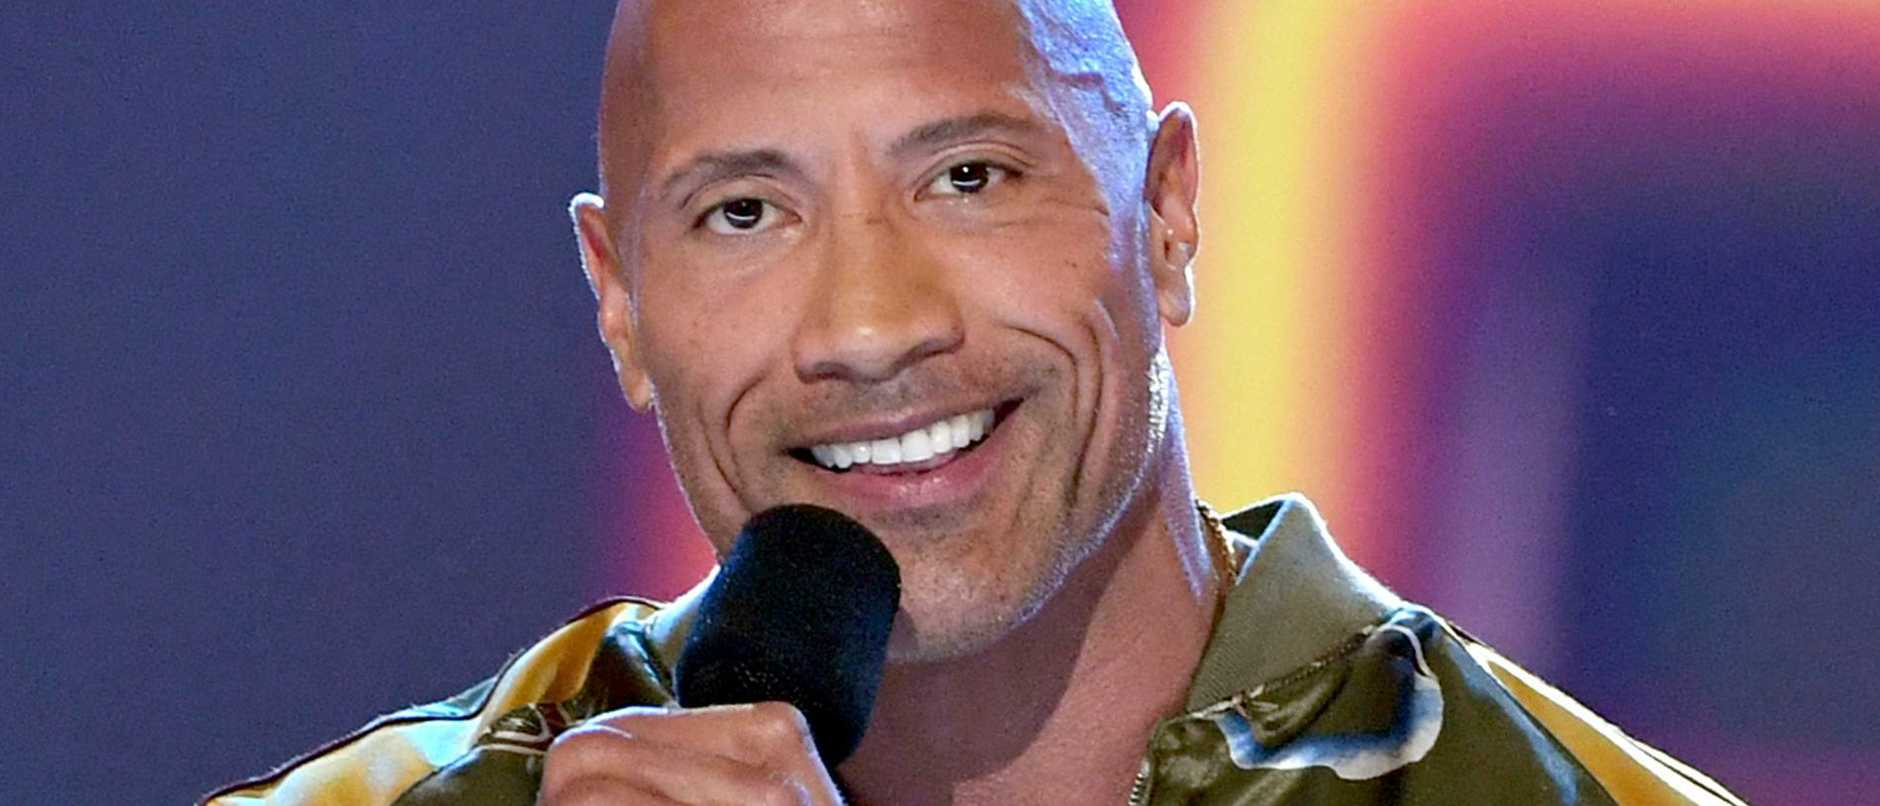 Dwayne Johnson accepts the MTV Generation Award.